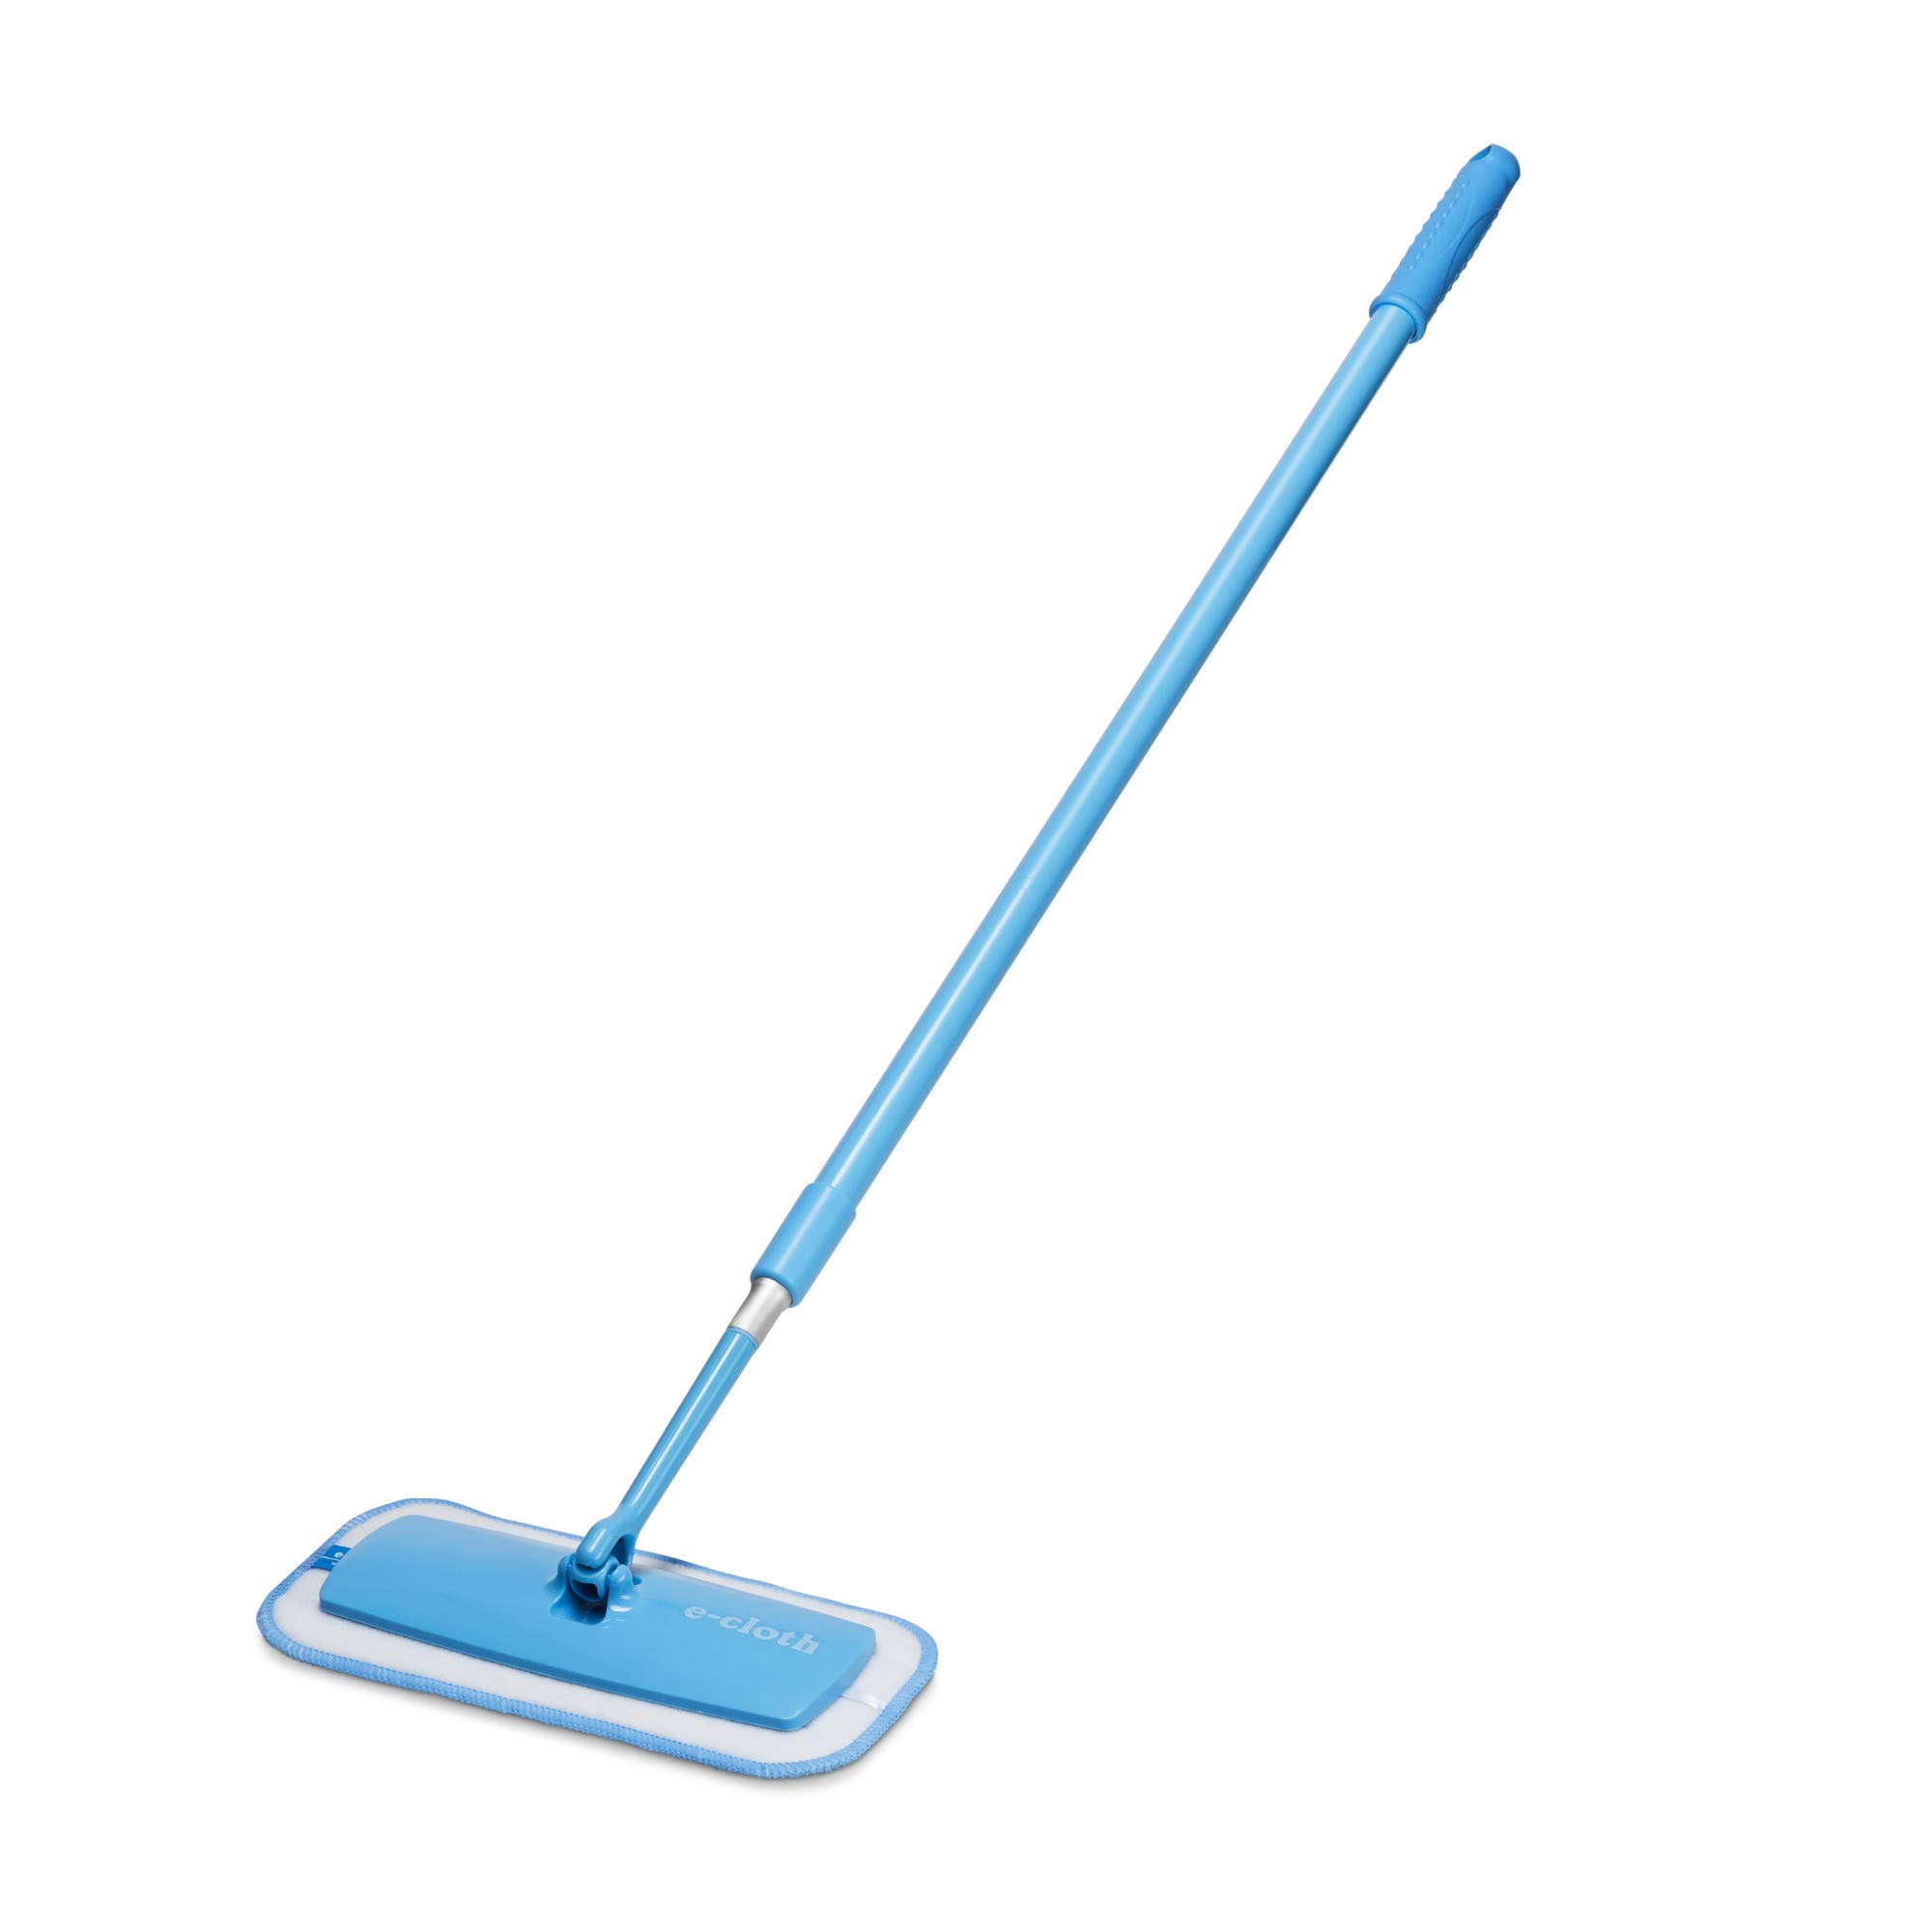 E-Cloth Mini Deep Clean Mop - Compact European Microfiber Damp Mop with Sturdy Telescoping Handle by E-Cloth (Image #1)